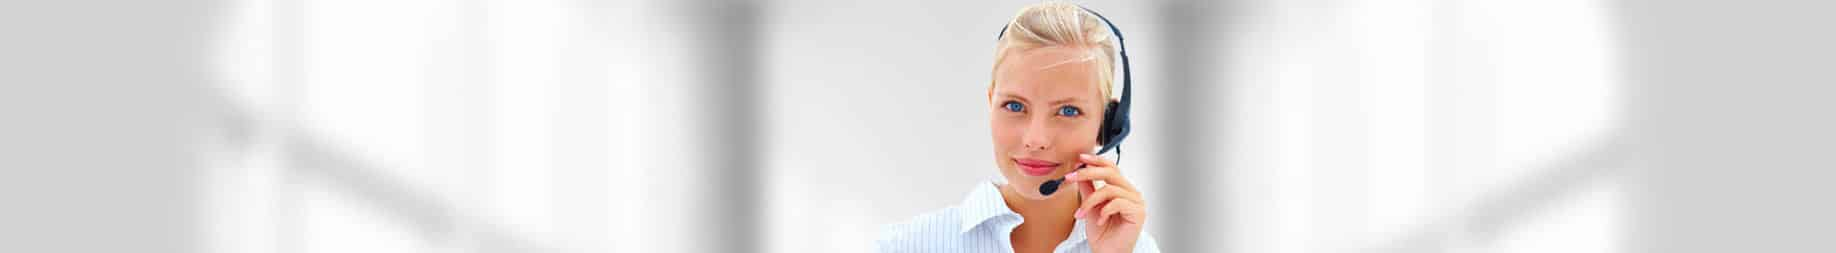 Outsourced Appointment Setting | Medical Call Centers | Healthcare Call Centers | Healthcare Call Center | Healthcare Outsourcing | Appointment Setters | Outbound Call Center | Appointment Setting Services | Appointment Setting Call Centers | Appointment Setting Services | Outbound Call Centers | Lead Generation | Latin America | United States | UK | Europe